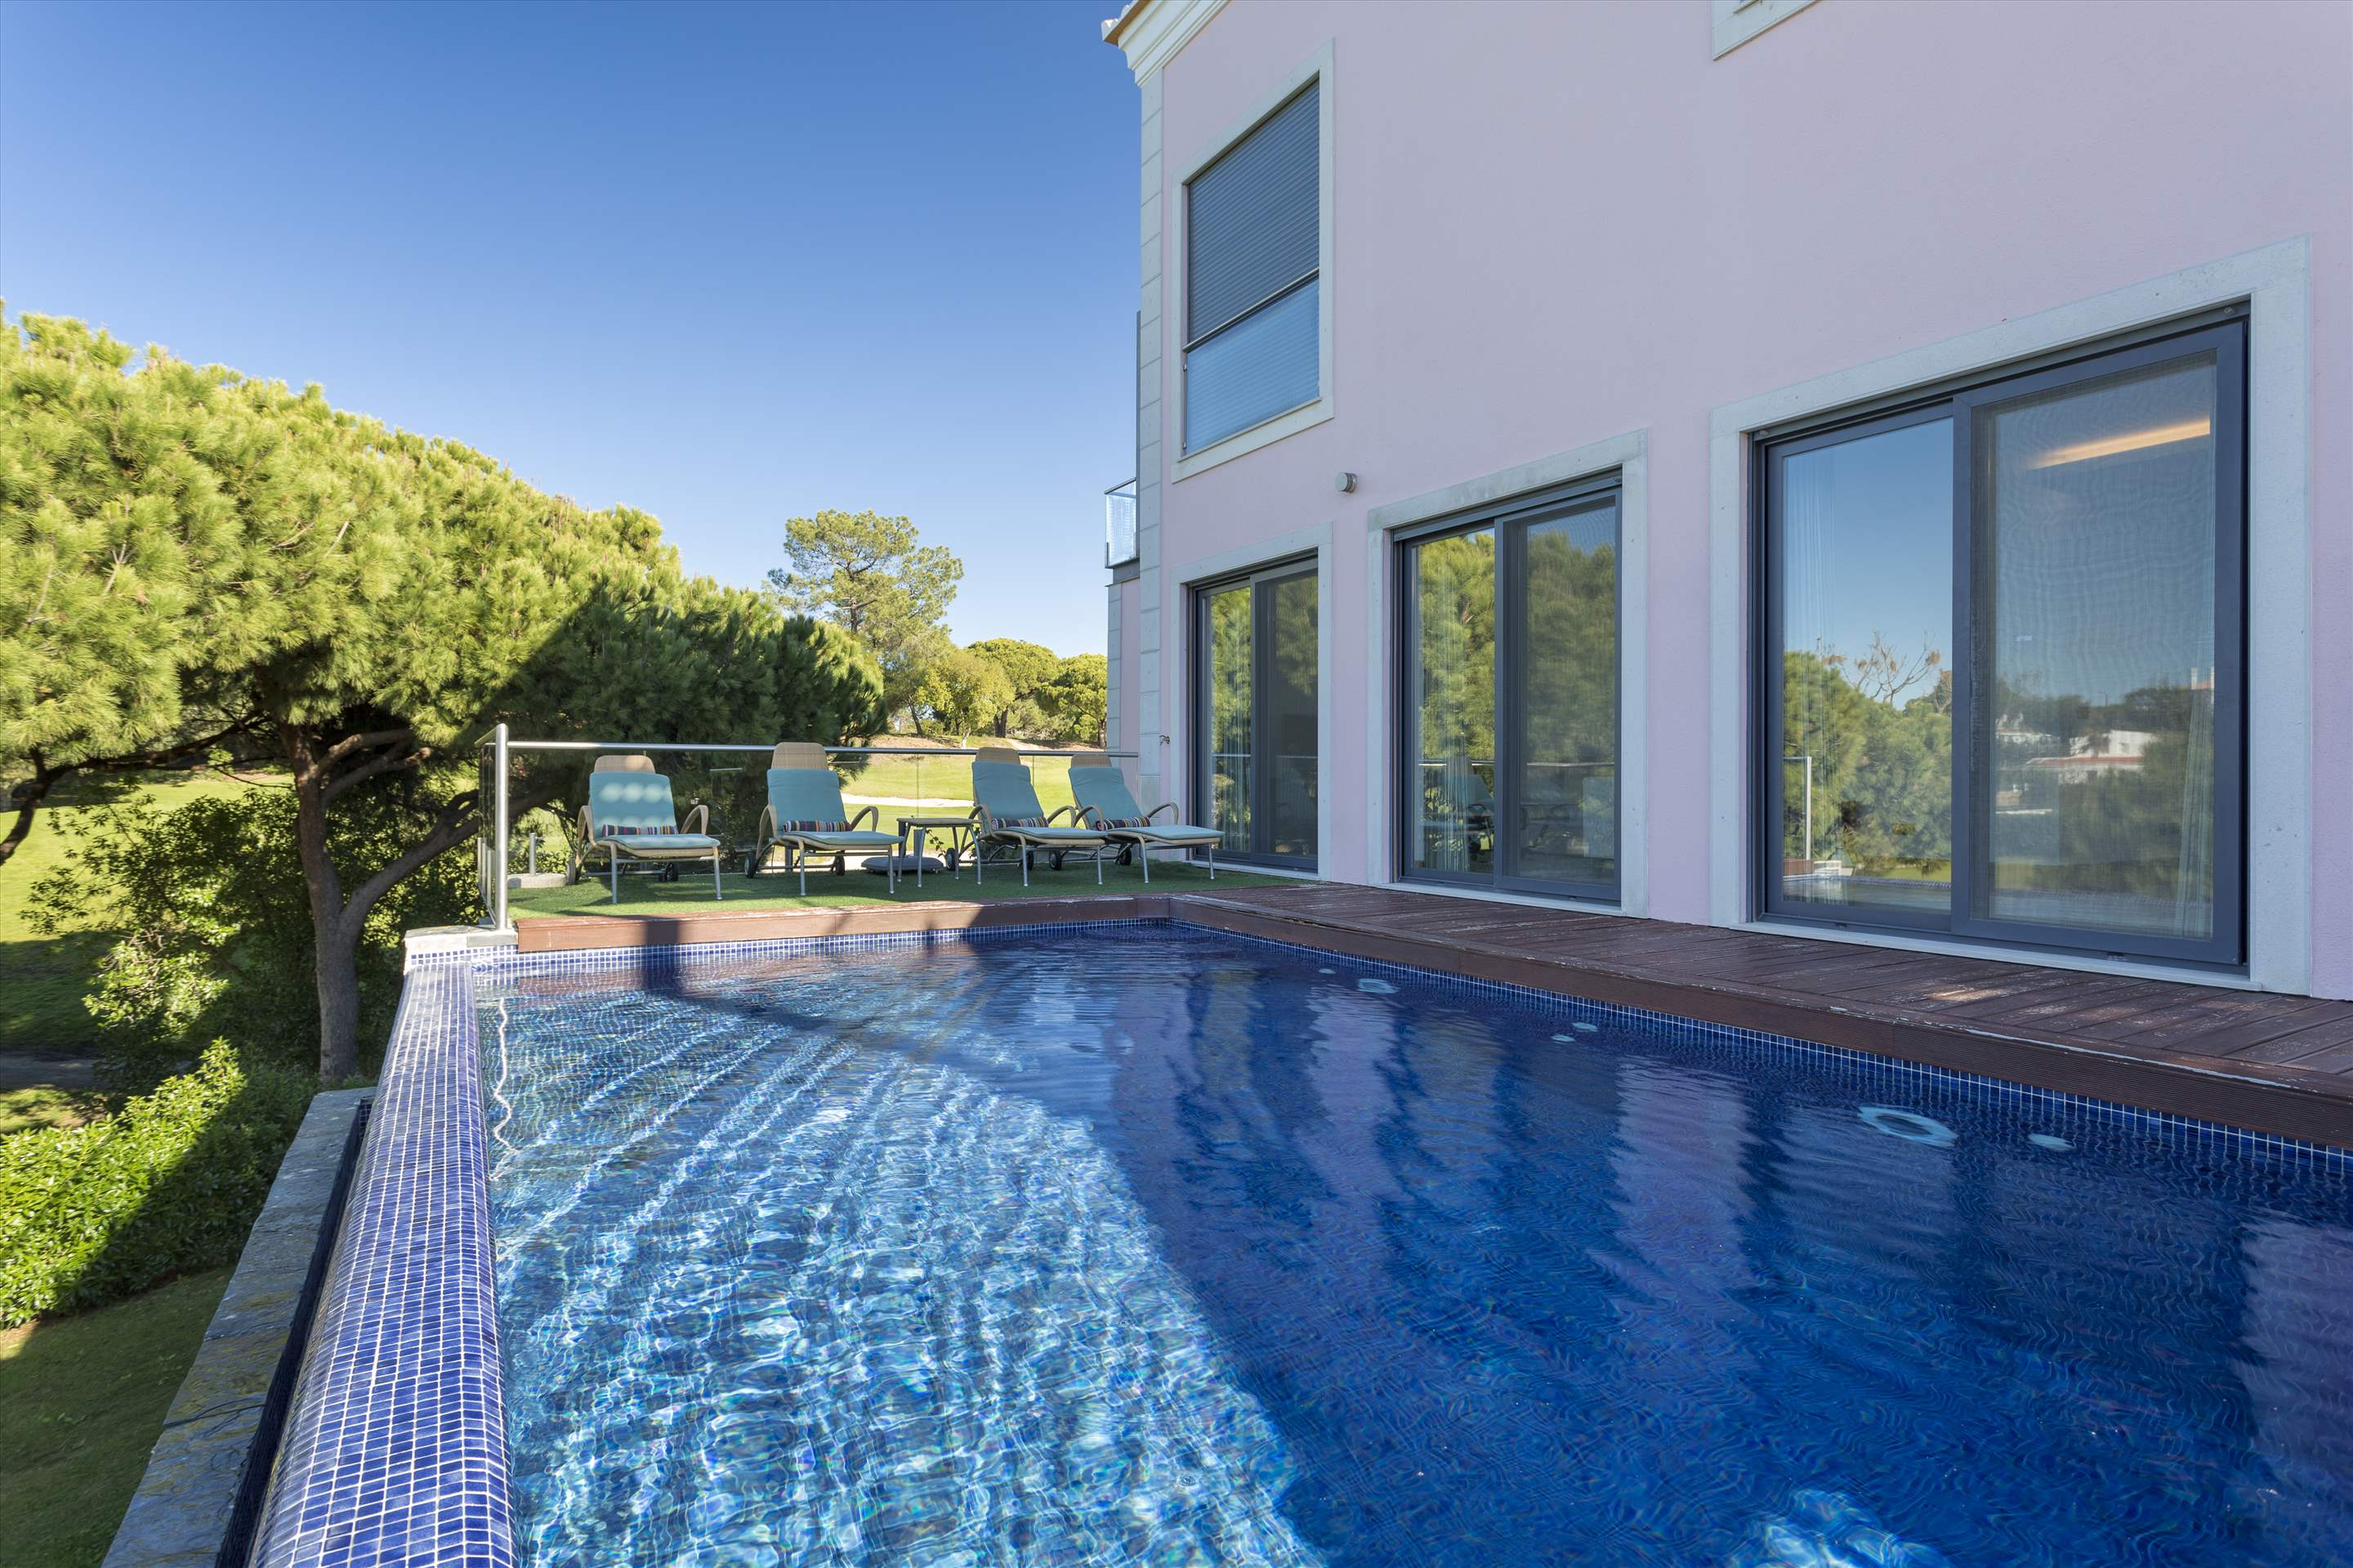 Apartment Alexandra, 2 bedroom apartment in Vale do Lobo, Algarve Photo #2